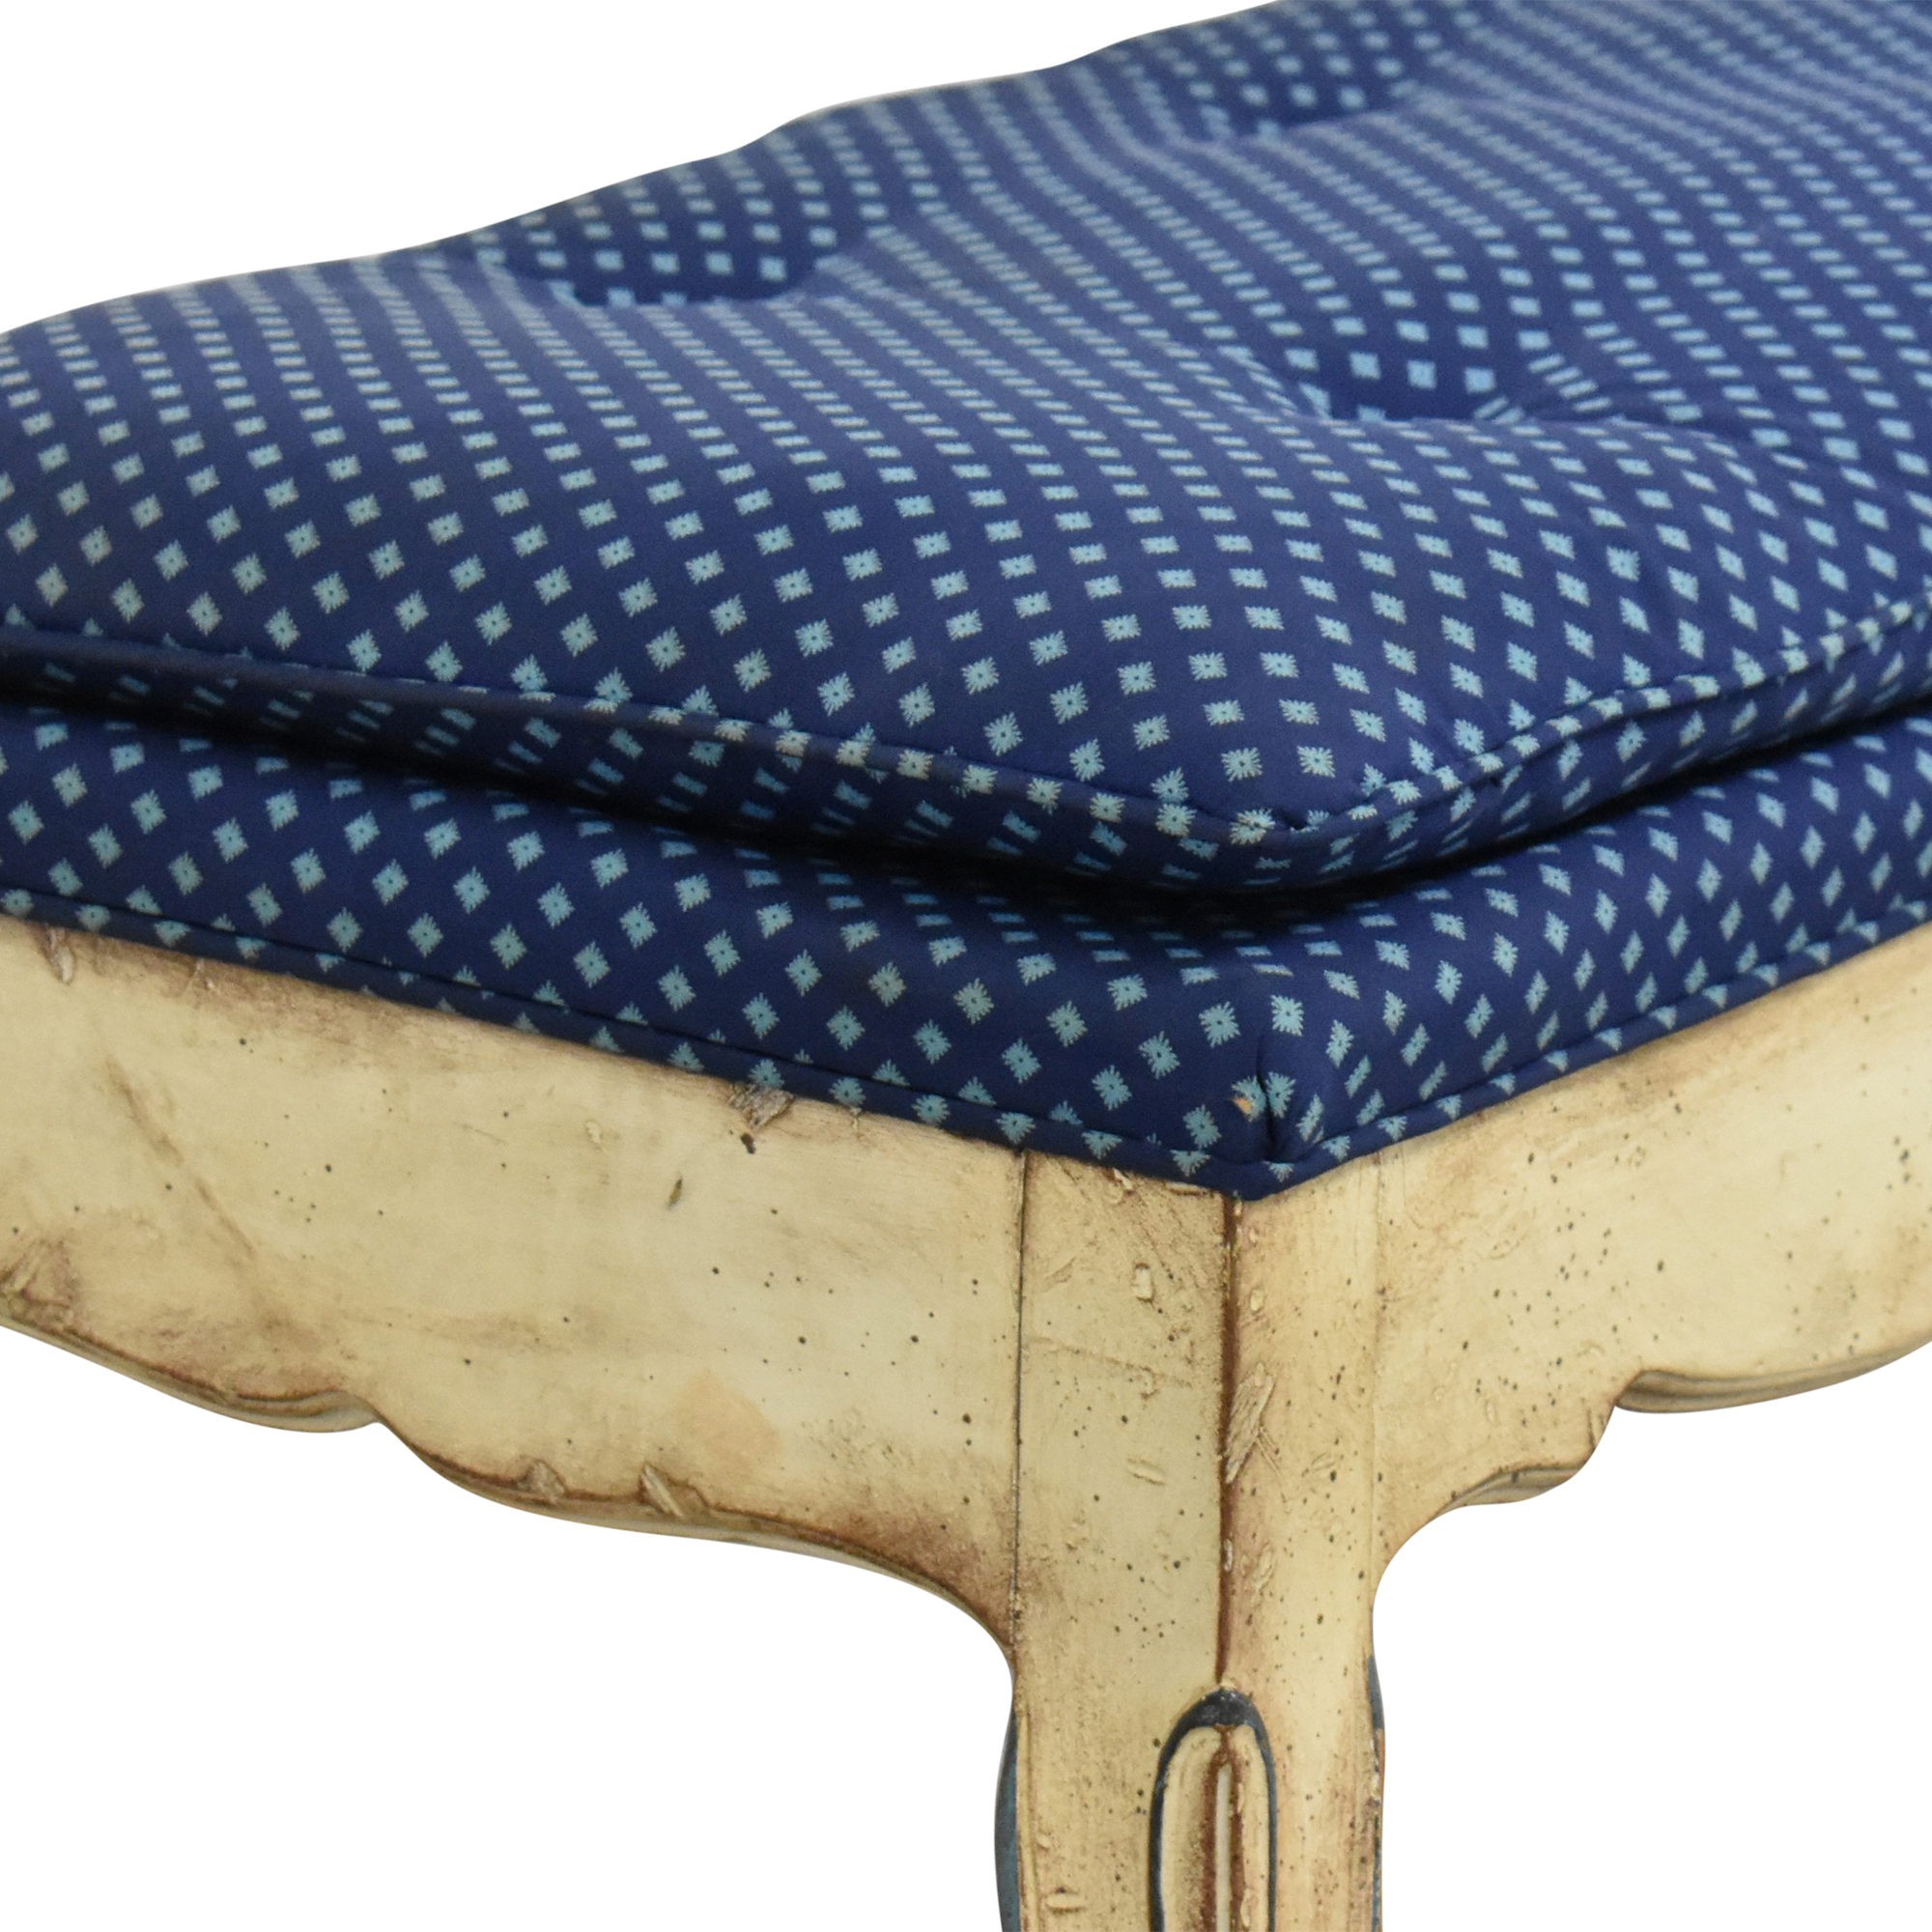 Vintage Style Tufted Bench for sale